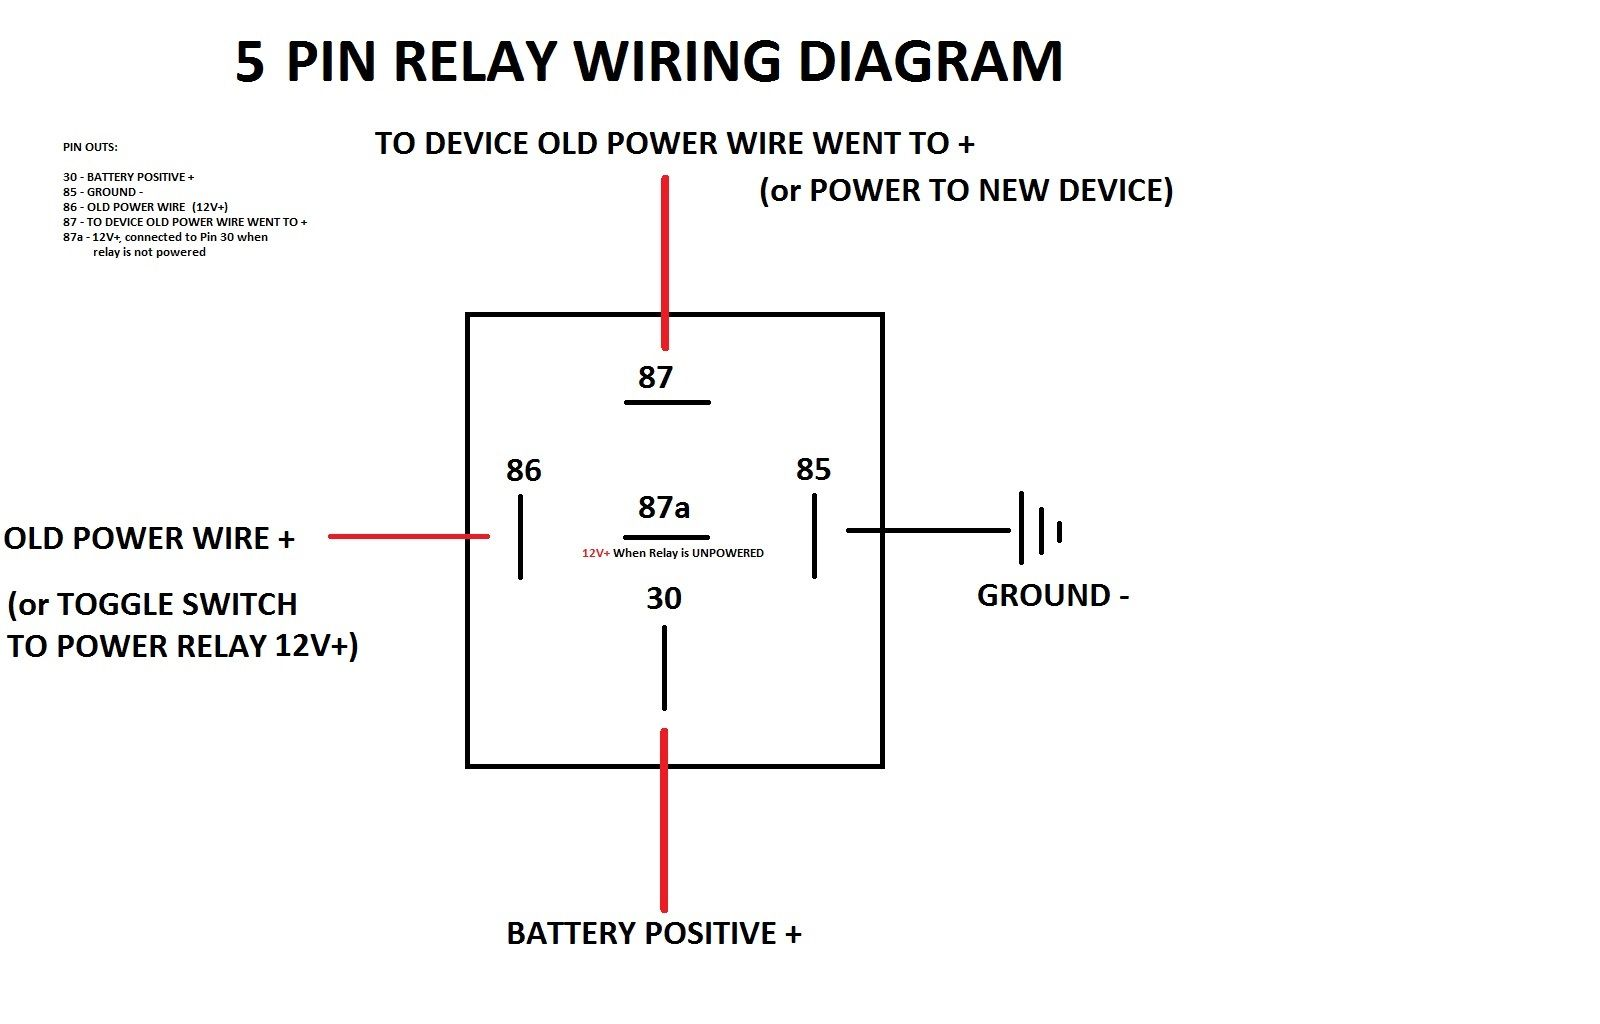 Basic Relay Diagram Switched - wiring diagram on the net on